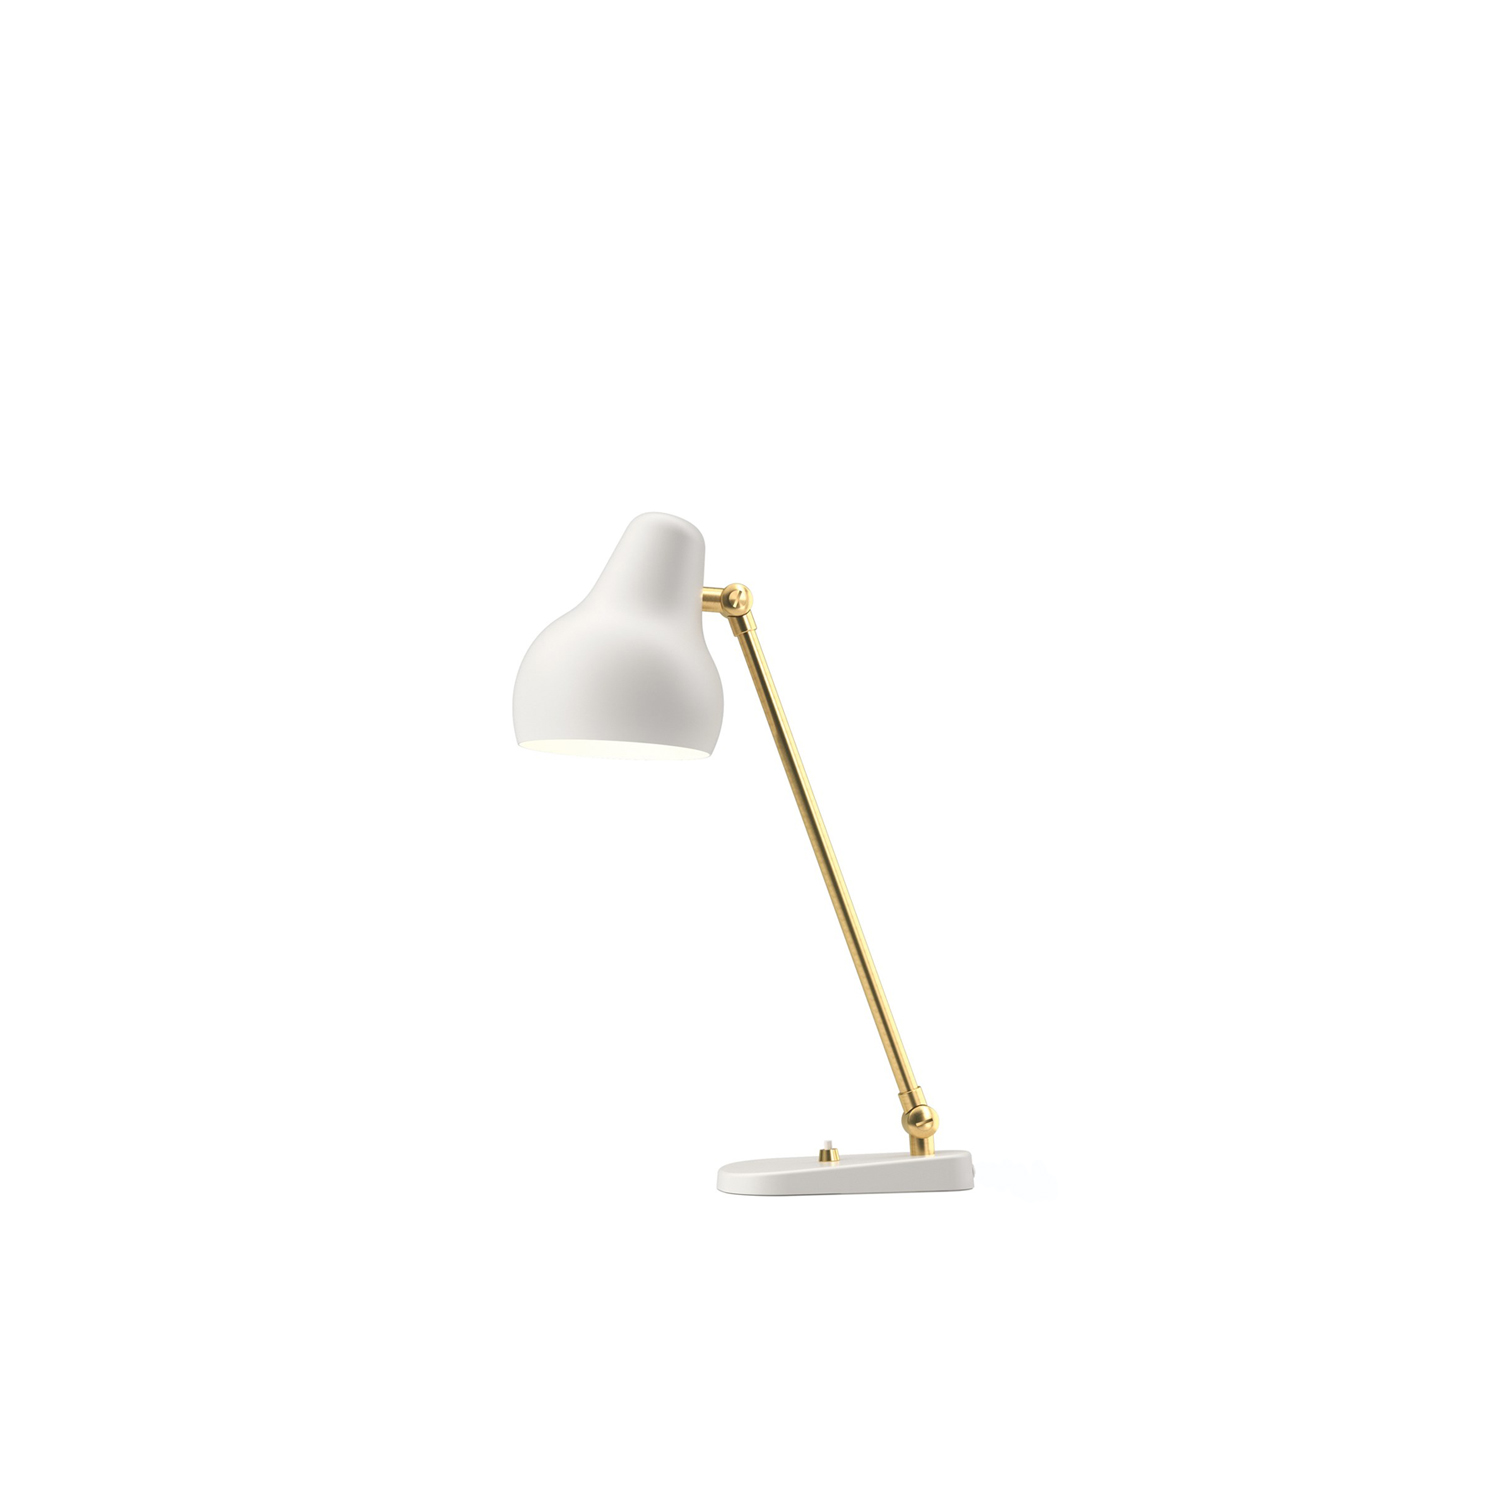 VL38 Table Lamp - The fixture emits downward directed light. The angle of the shade can be adjusted to optimize light distribution. The shade is painted white on the inside to ensure a soft comfortable light.  | Matter of Stuff